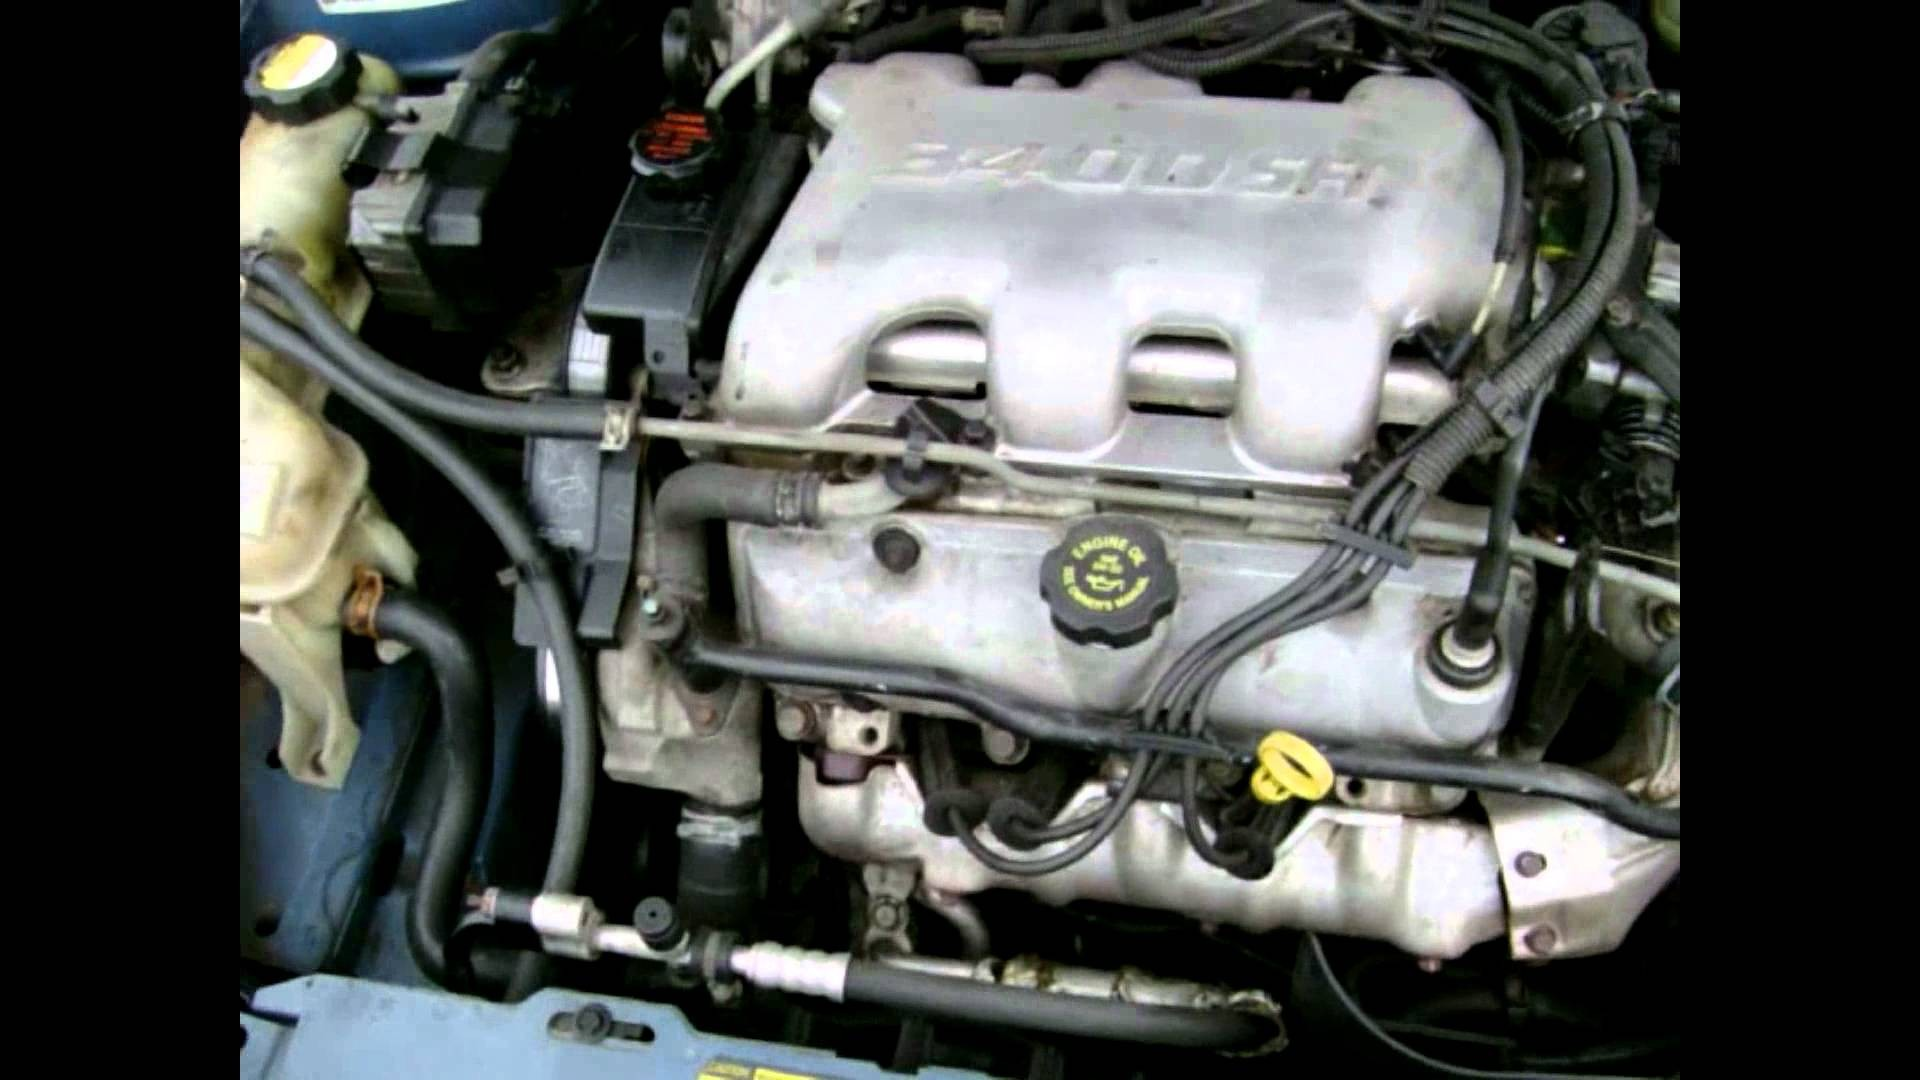 2001 Chevy Venture Engine Diagram Wiring Library Ford Taurus 2004 Chevrolet Complete Diagrams U2022 Rh Oldorchardfarm Co